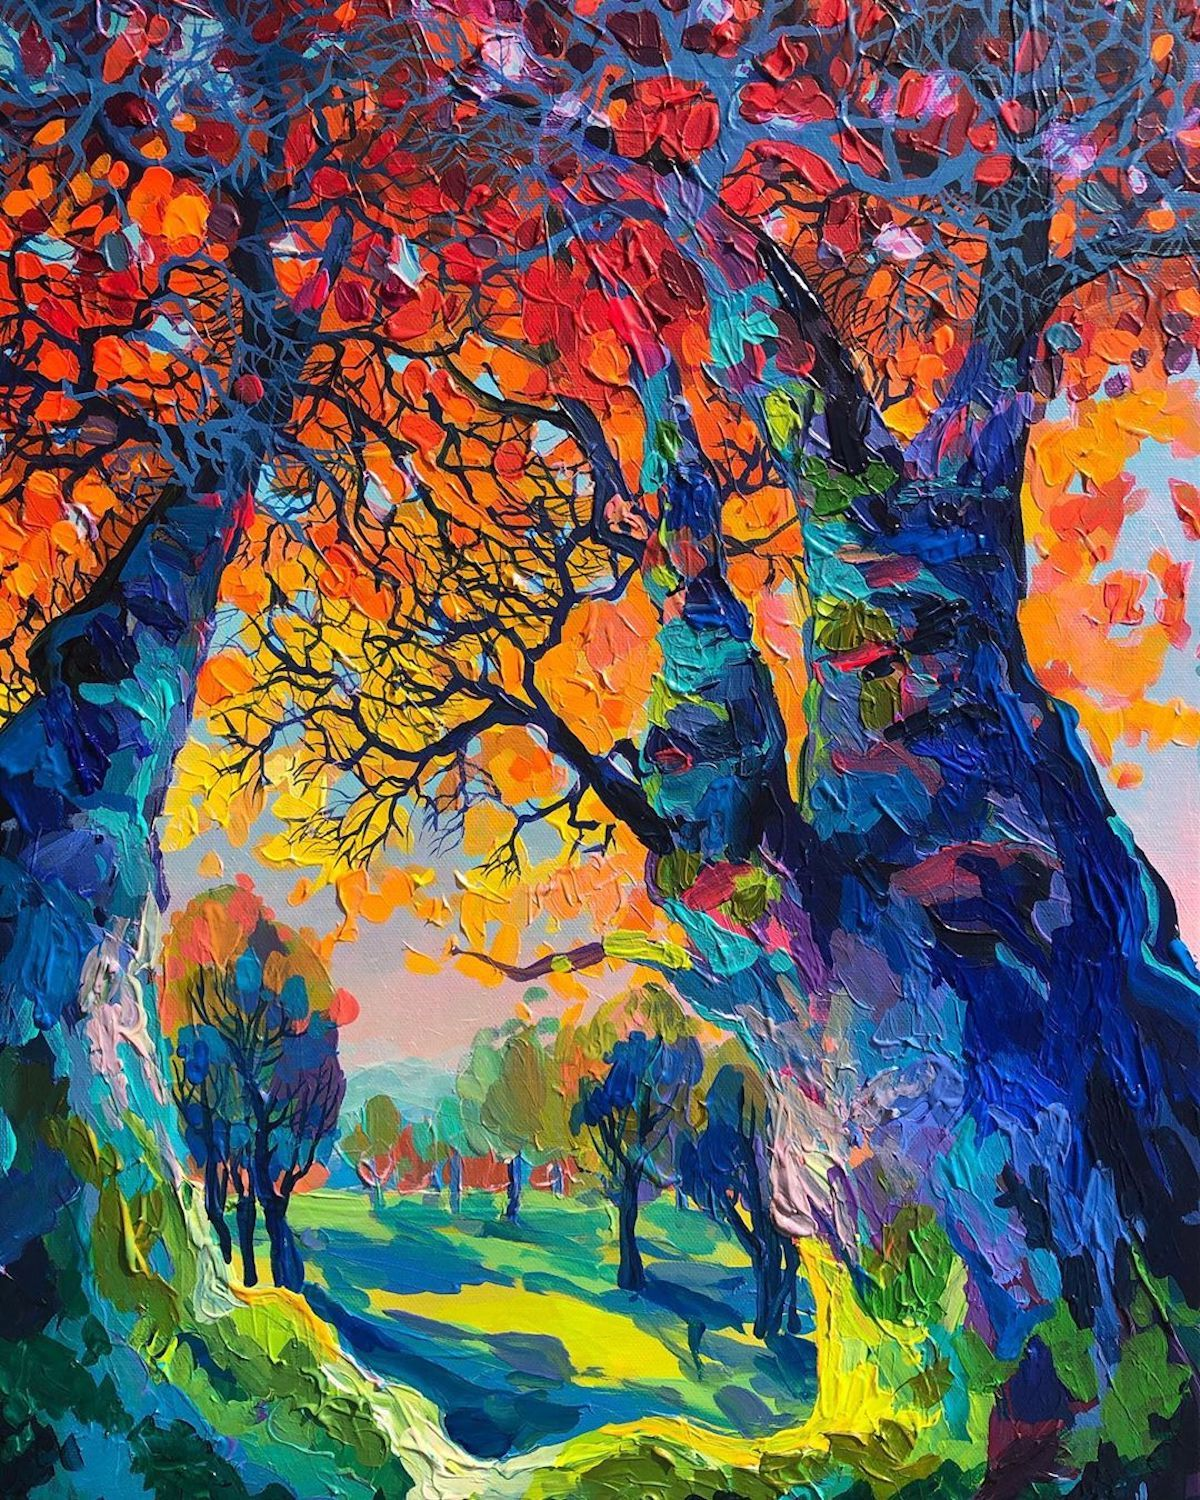 Brilliant Textured Paintings Capture European Countrysides In Kaleidoscopic Colors In 2020 Abstract Portrait Painting Ladscape Painting Colorful Oil Painting